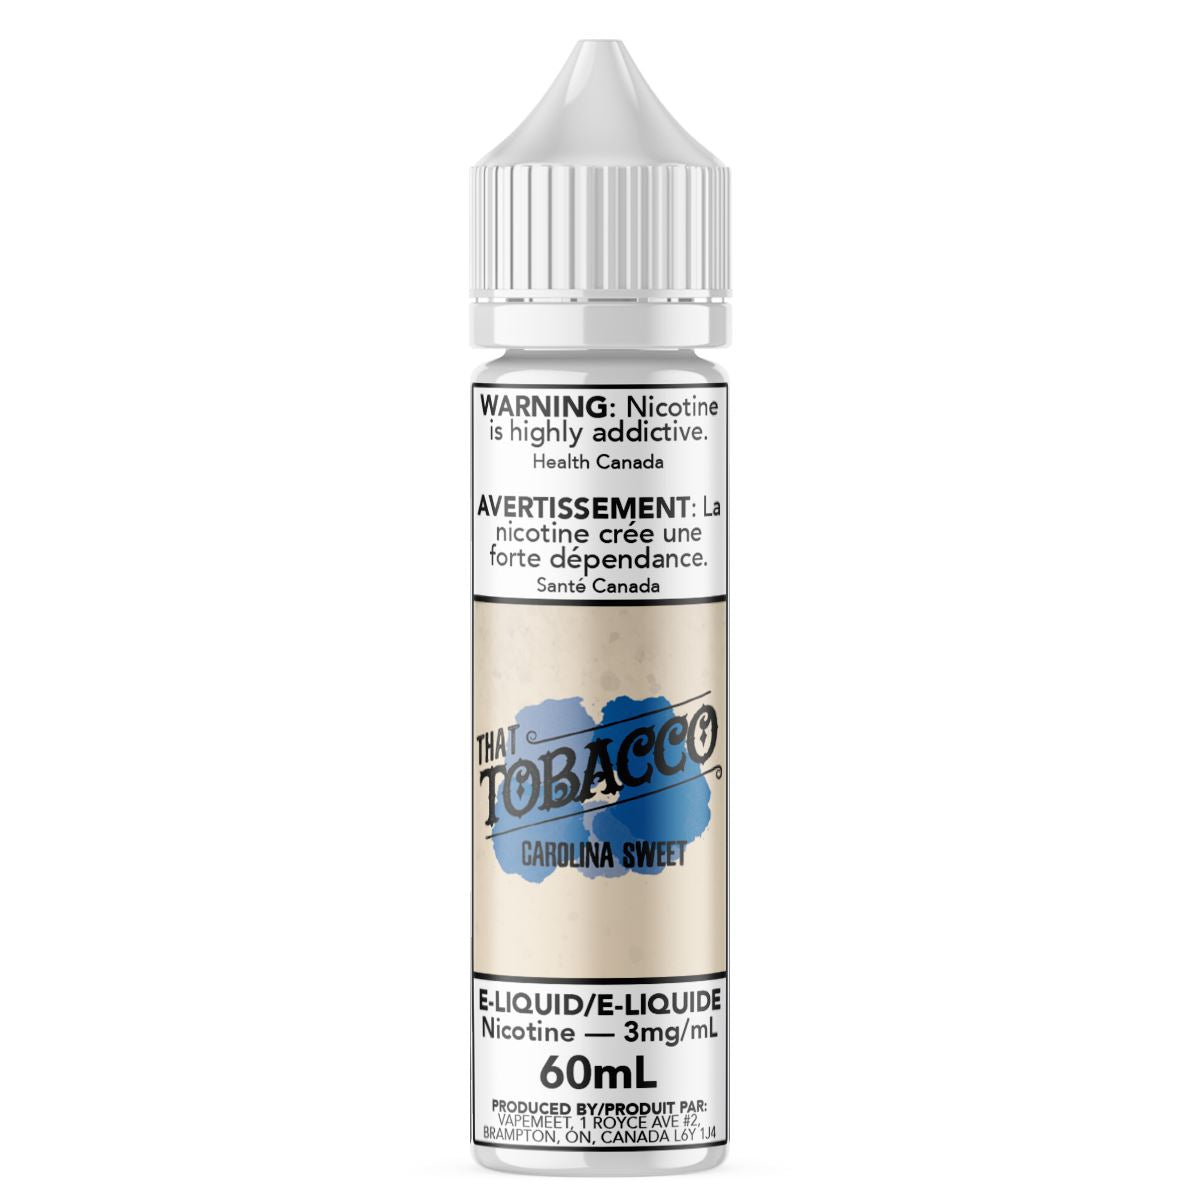 That Tobacco - Carolina Sweet E-Liquid That Tobacco 60mL 0 mg/mL